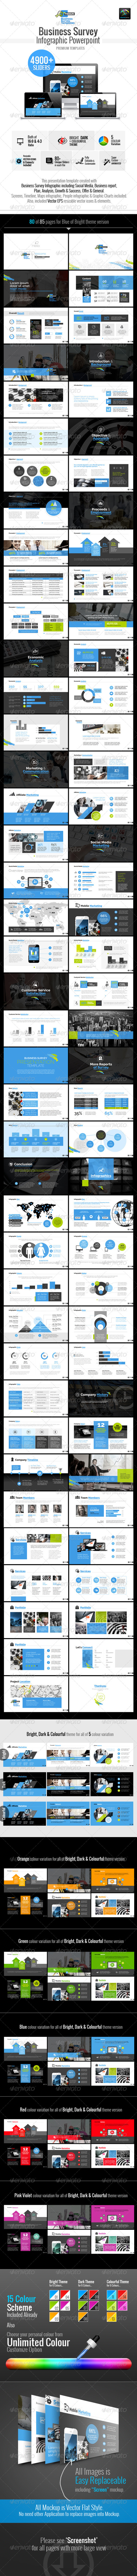 Business Survey Infographic Template